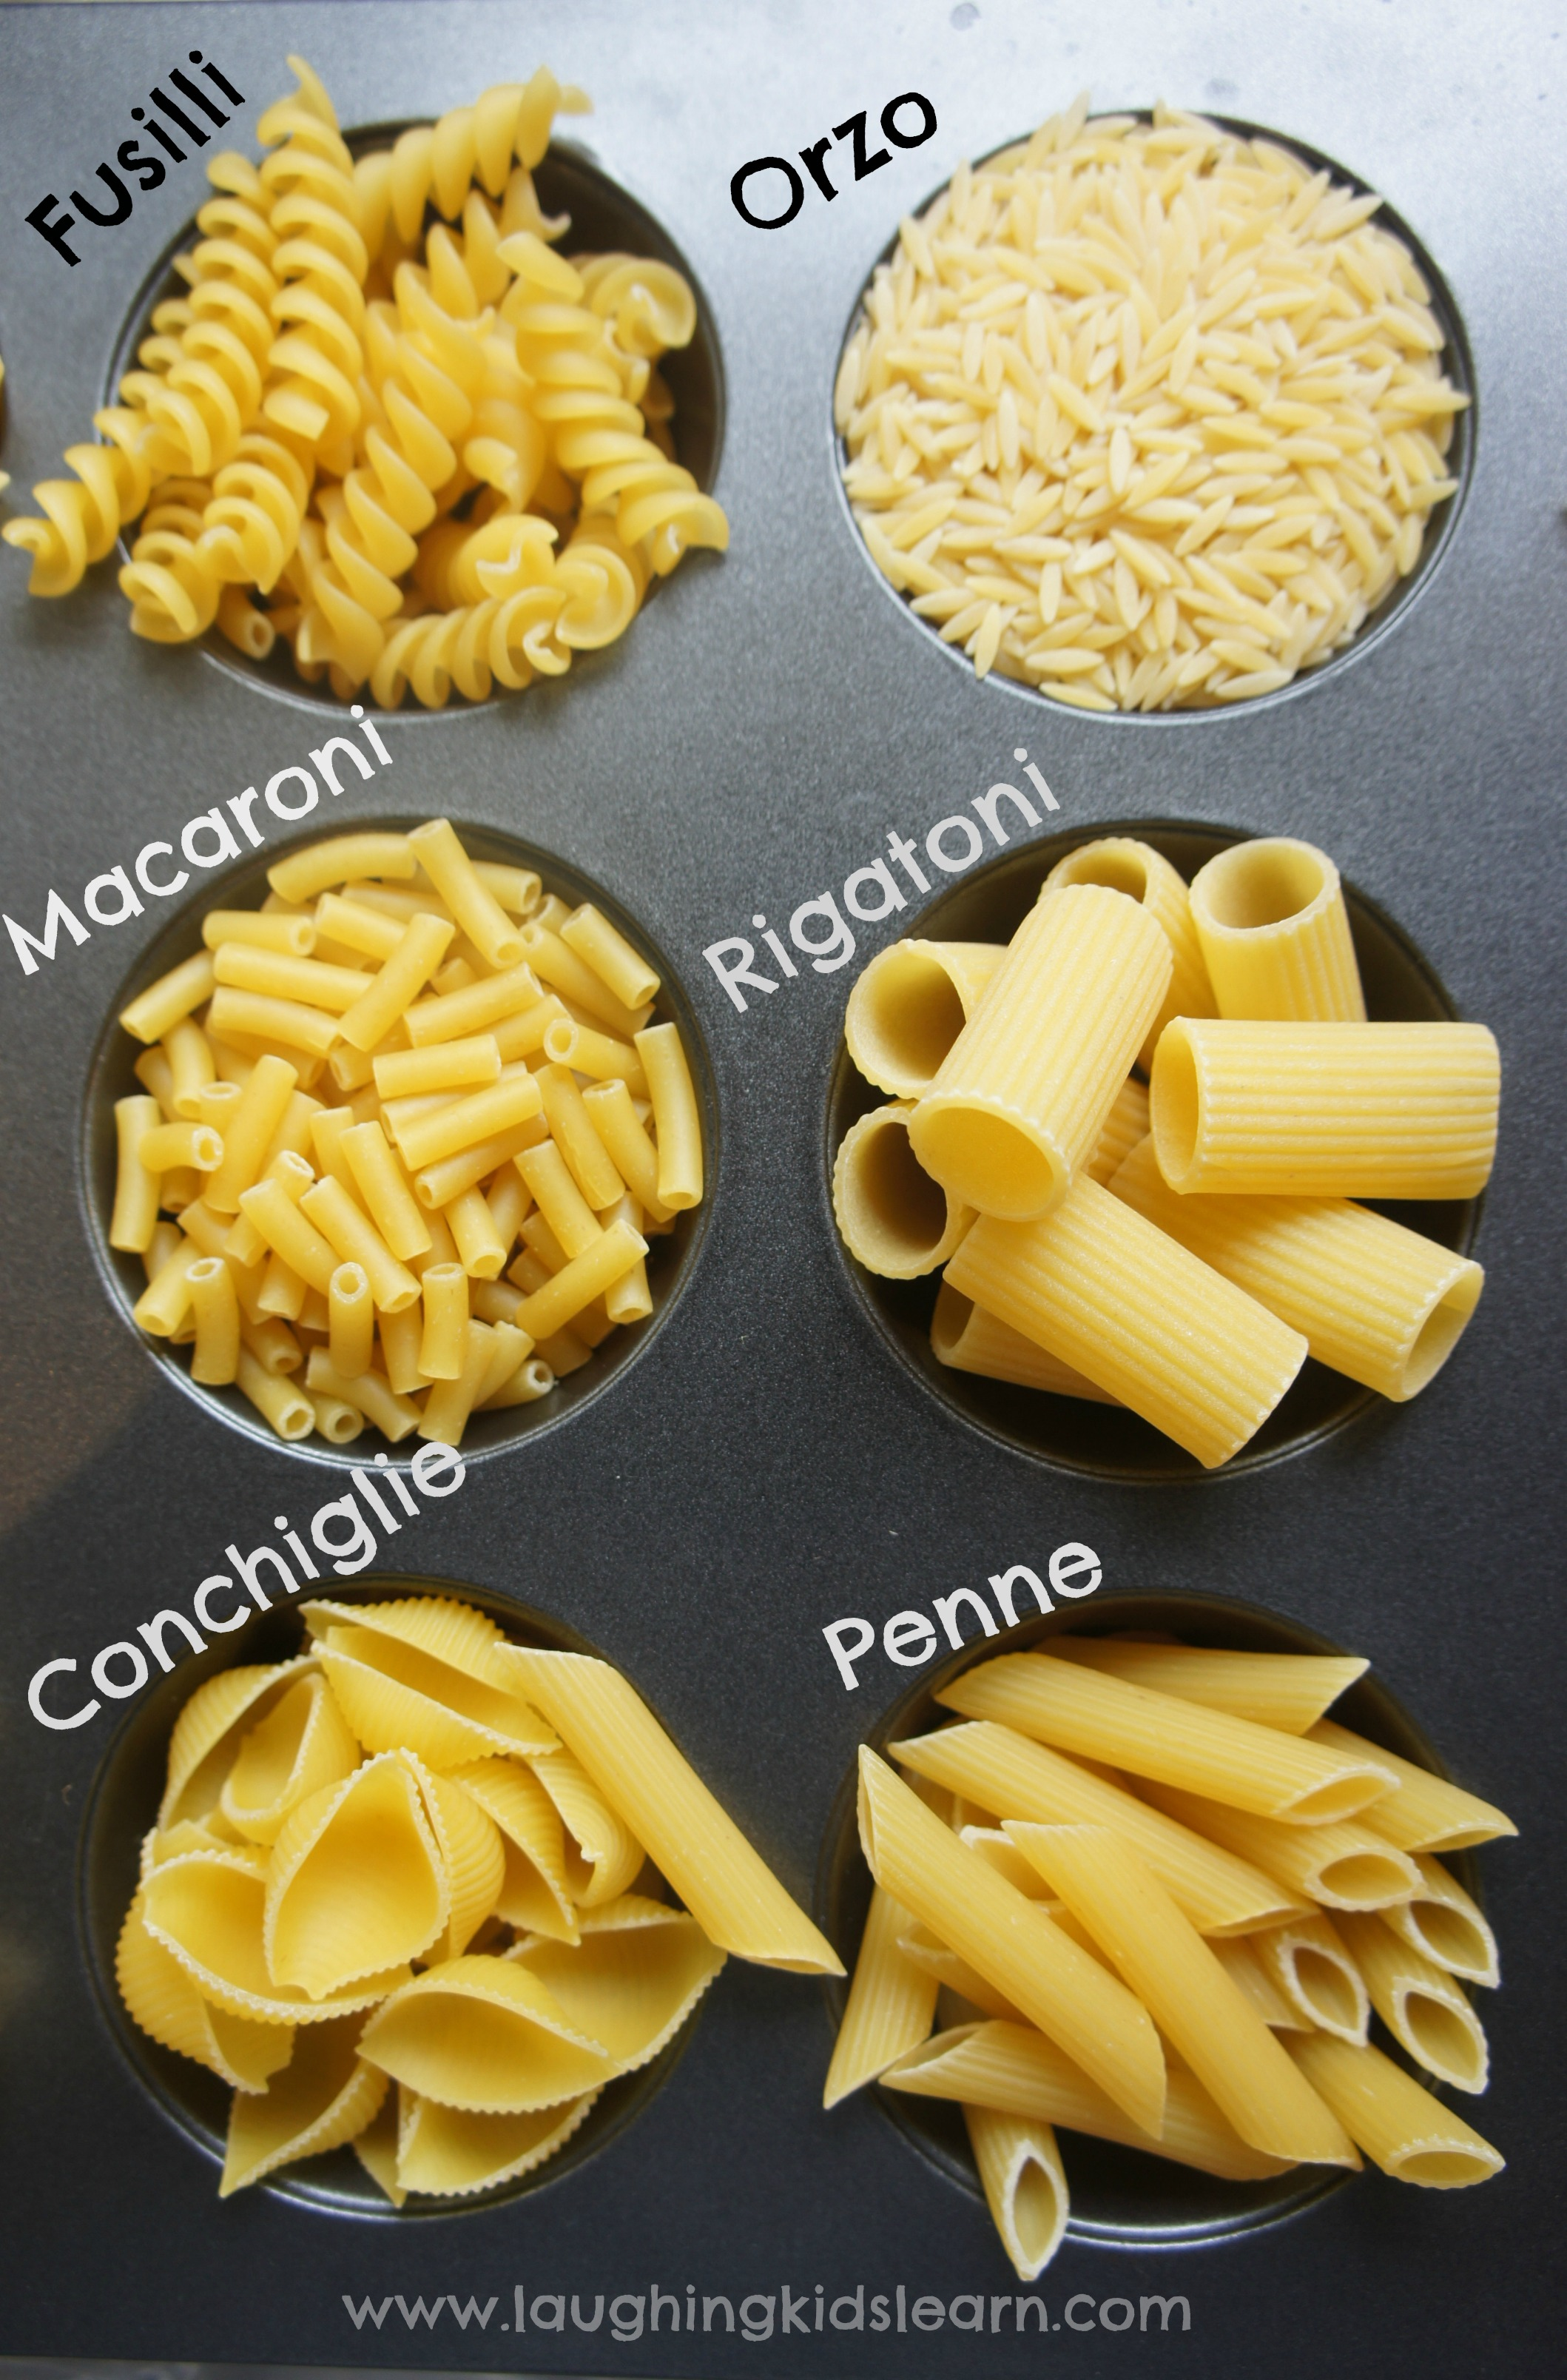 How to colour pasta for play - Laughing Kids Learn